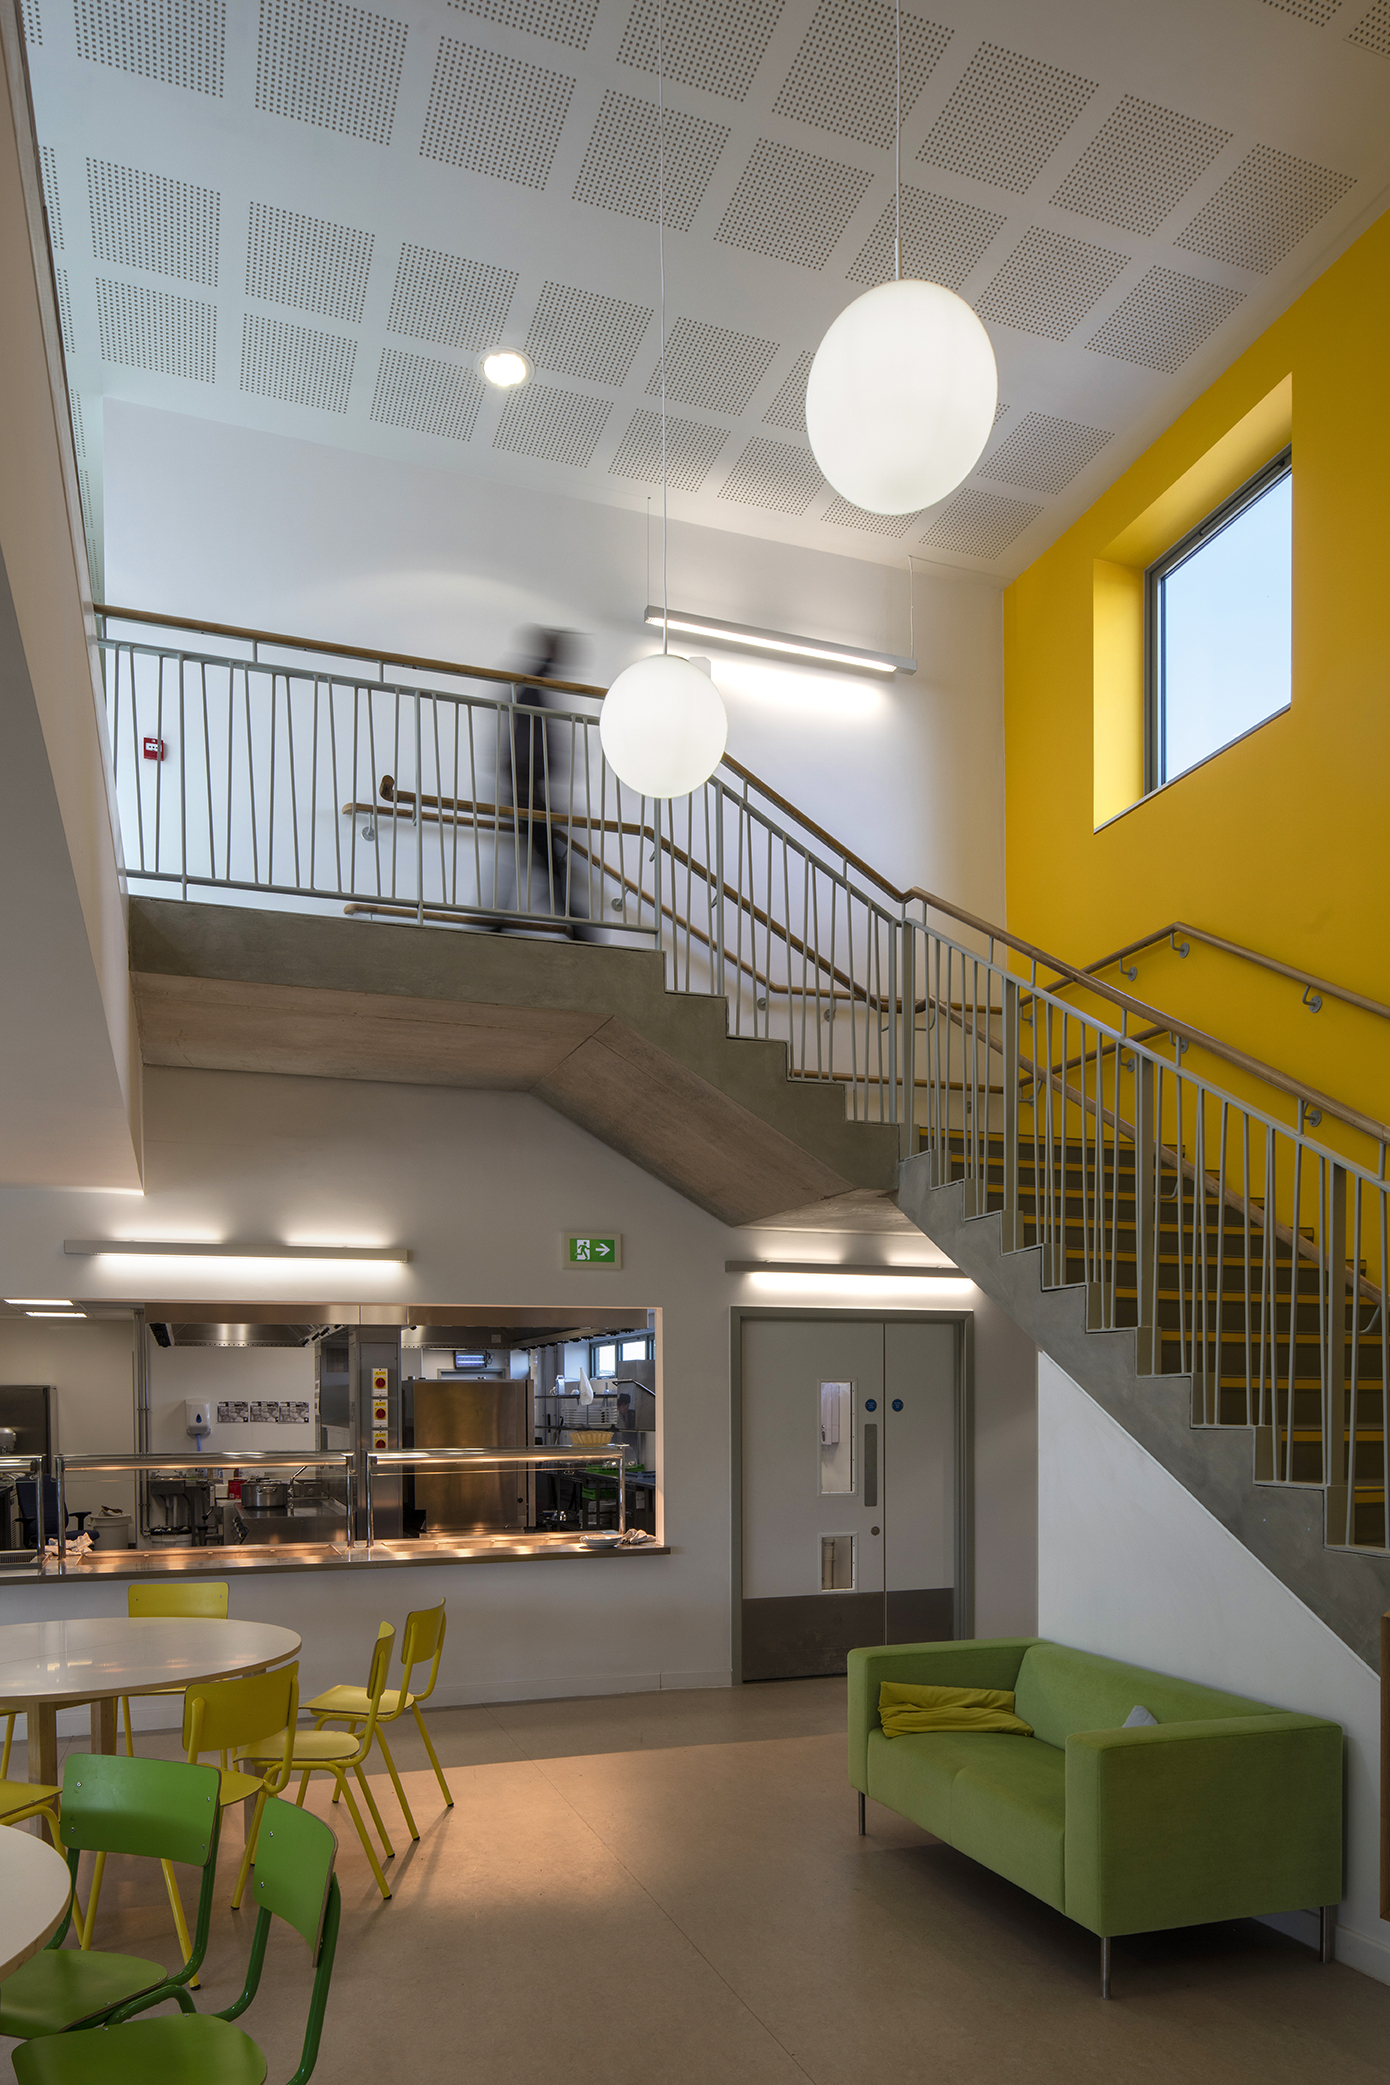 stairs - University of Cambridge Primary School by Marks Barfield Architects